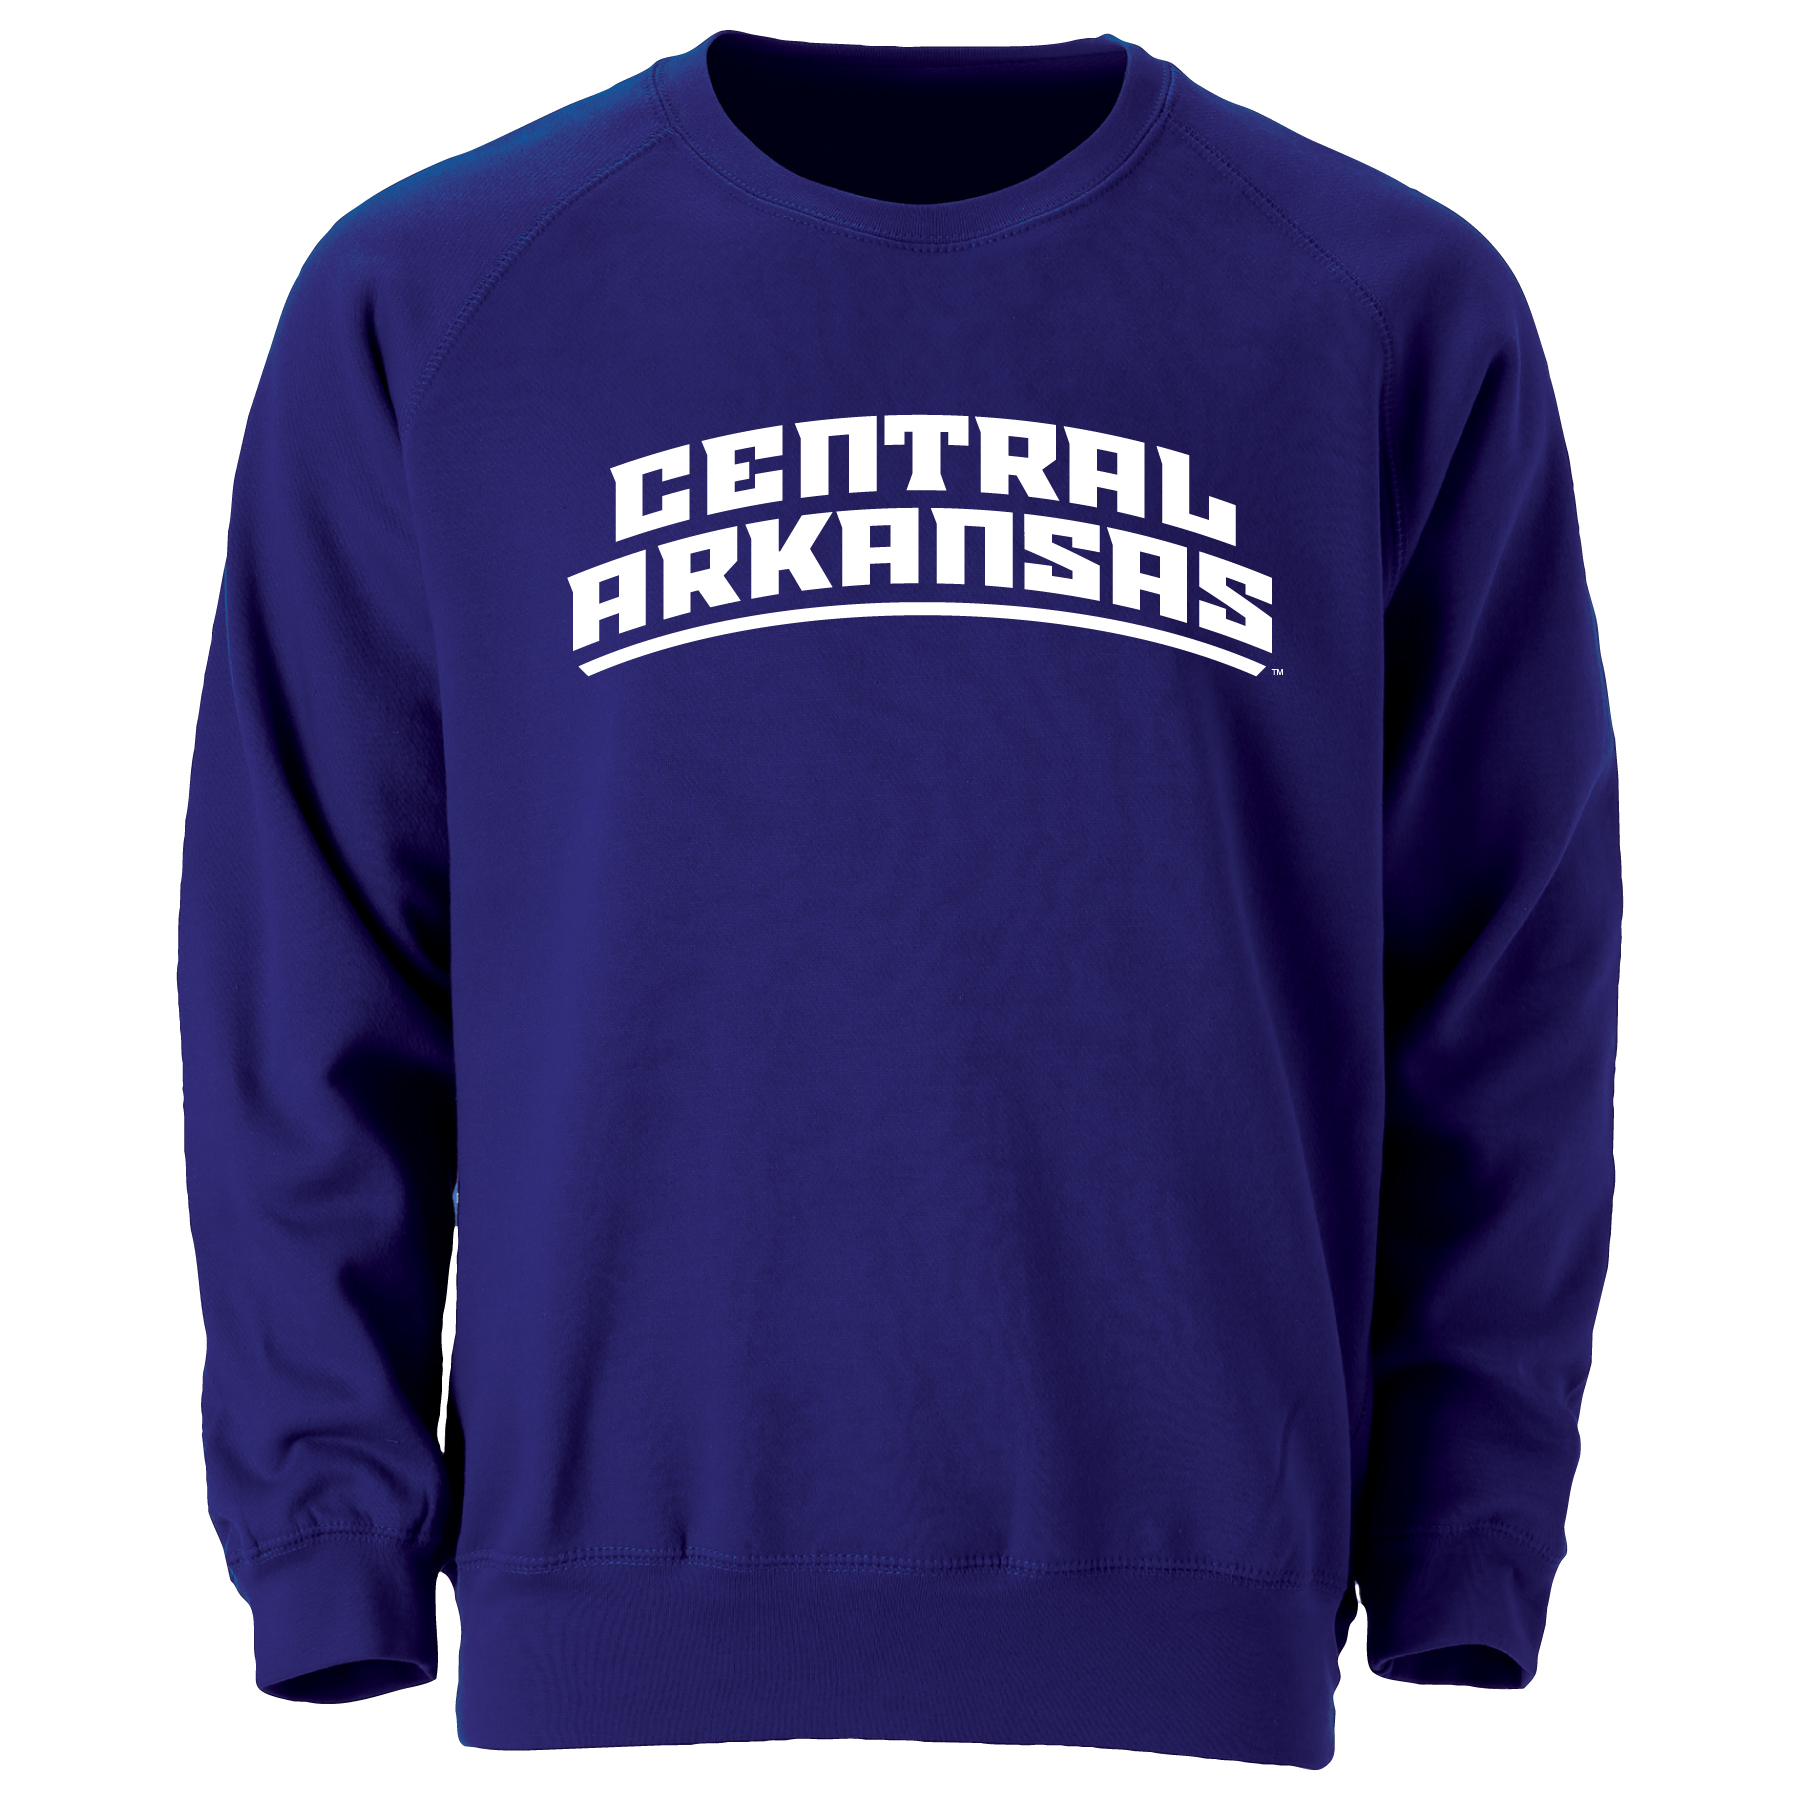 Central Arkansas Sweatshirt